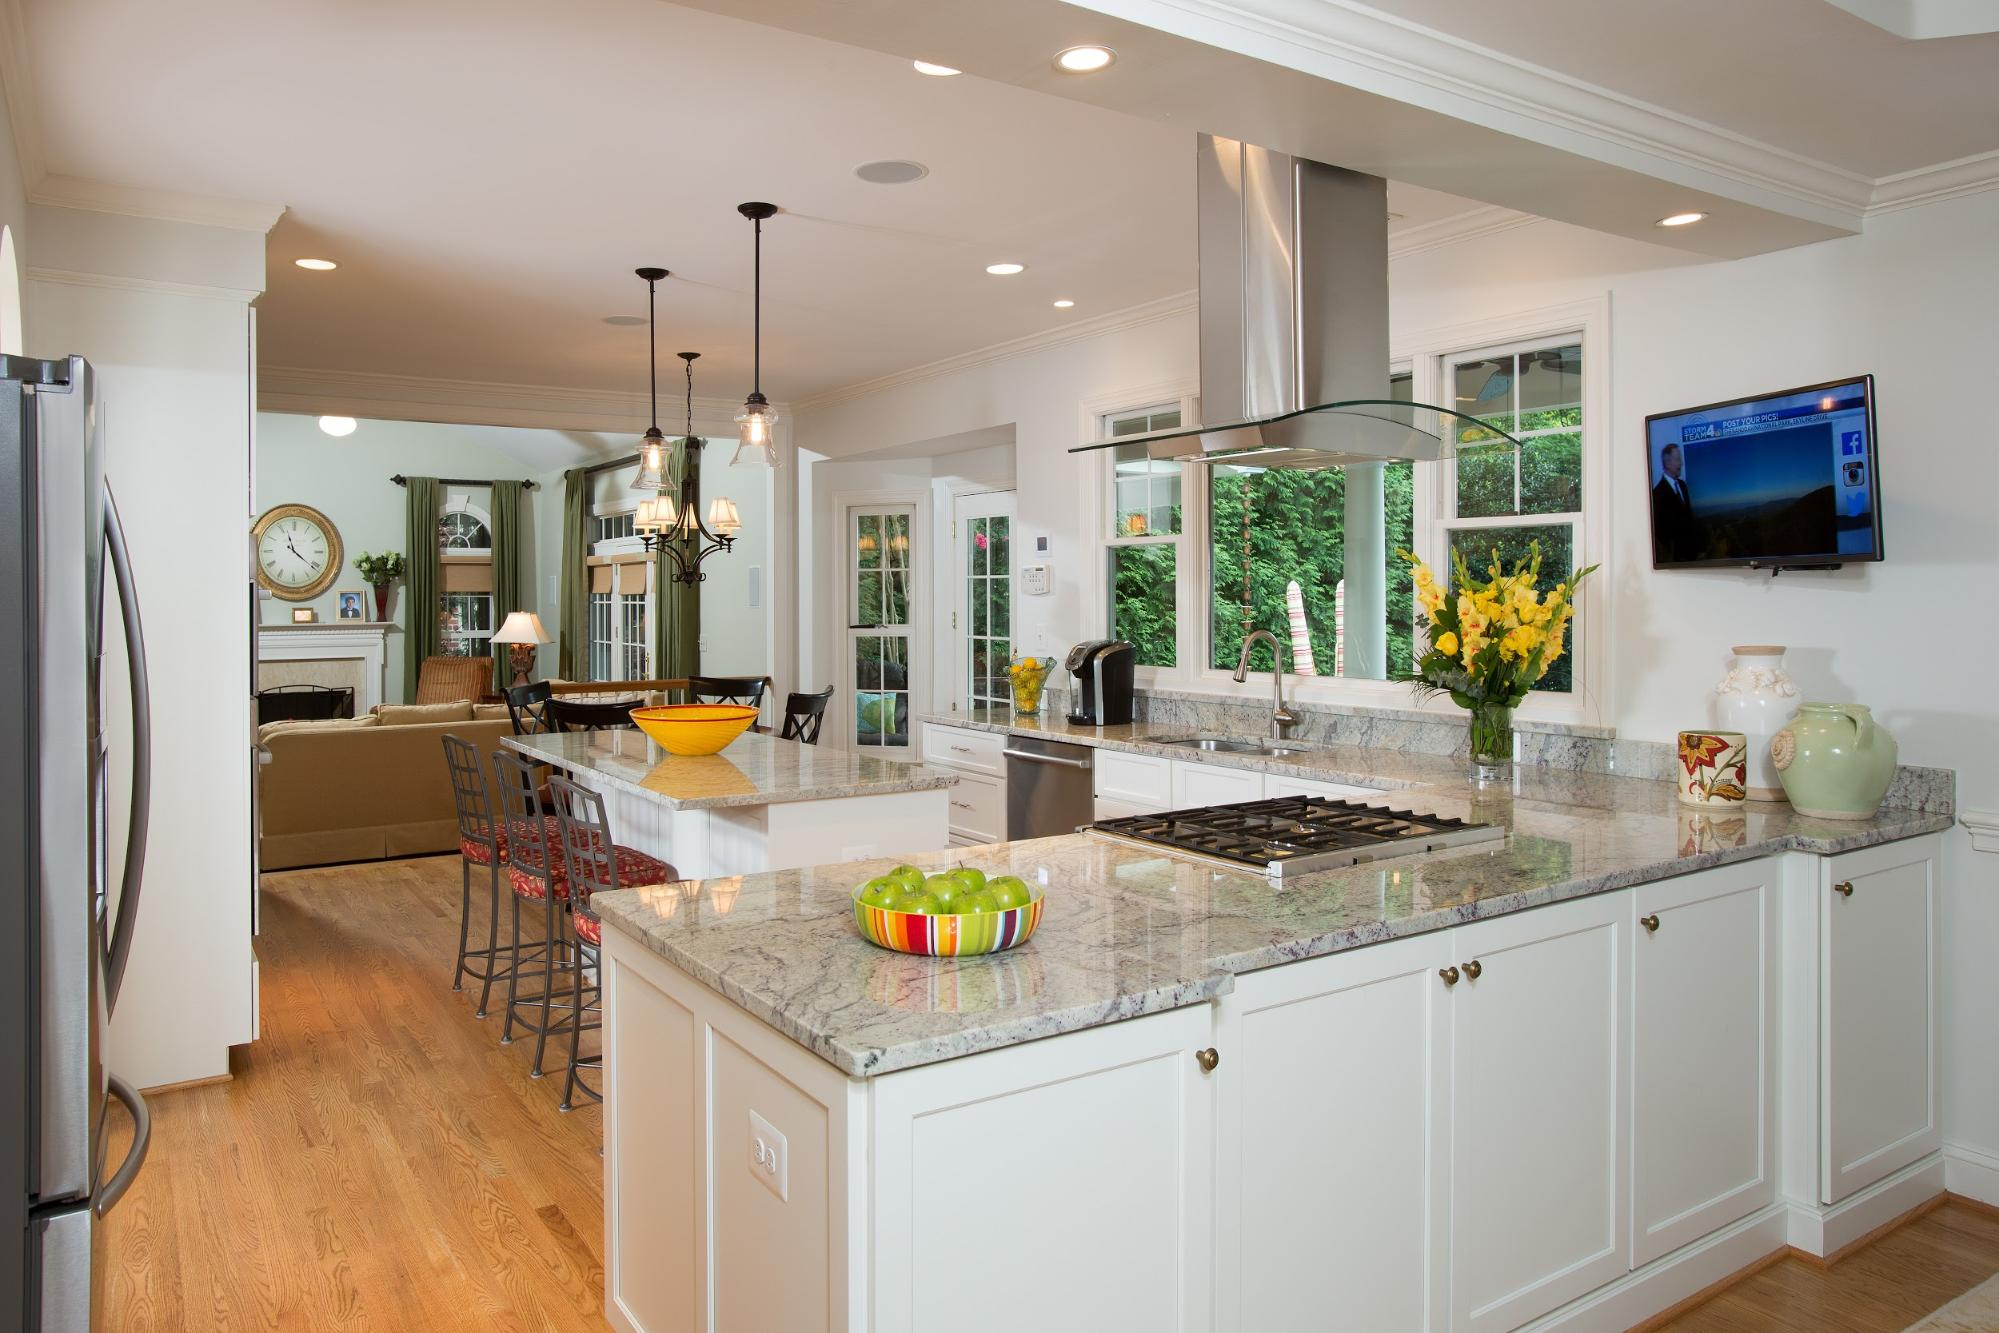 Home Remodeling In Alexandria, Virginia